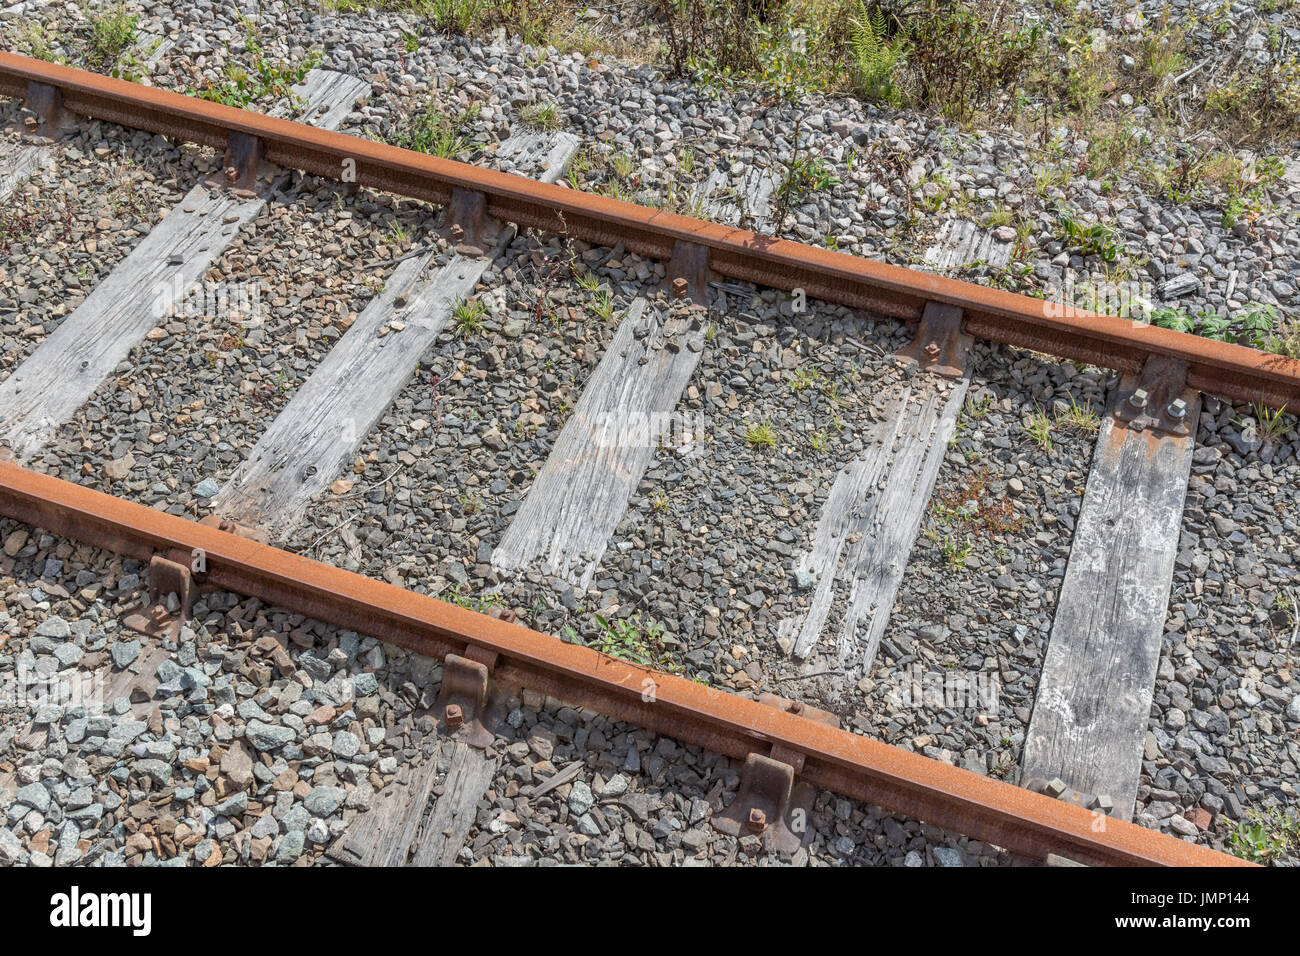 Small section of railway / railroad track - metaphor for 'end of the line', rail transport, and general - Stock Image